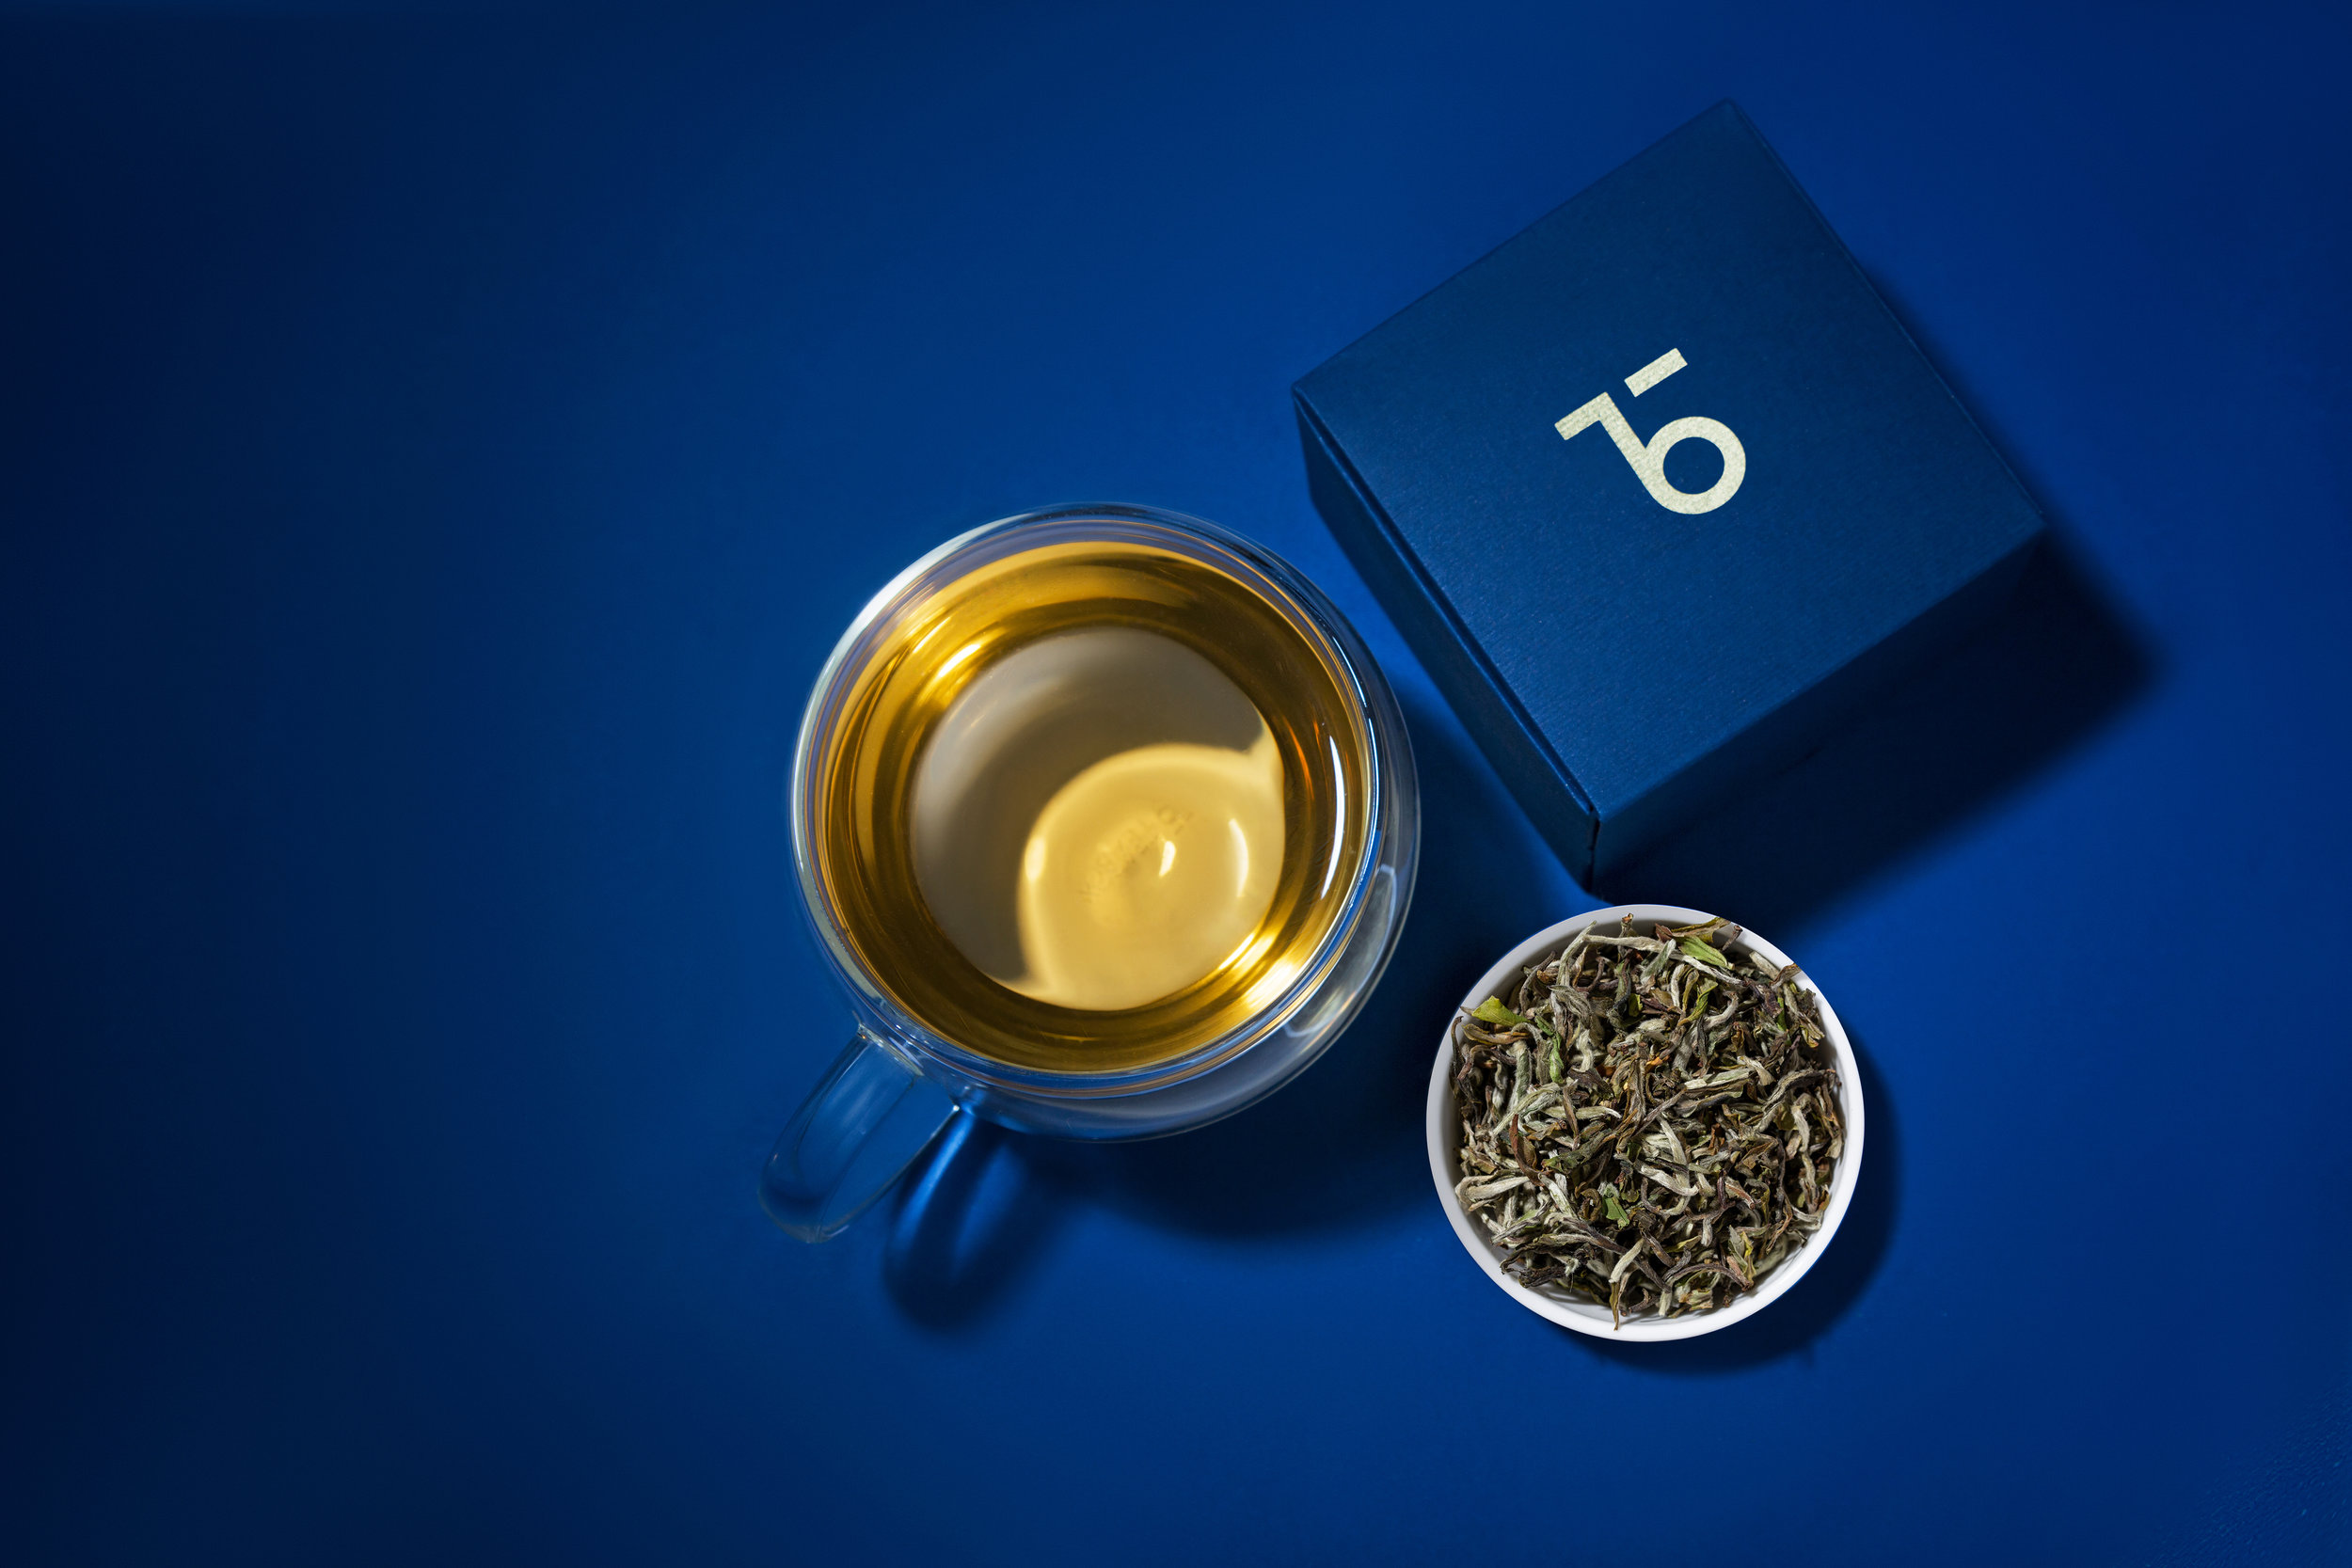 Like champagne': India's Teabox launches country's most expensive tea at US$2,890 per kilogram